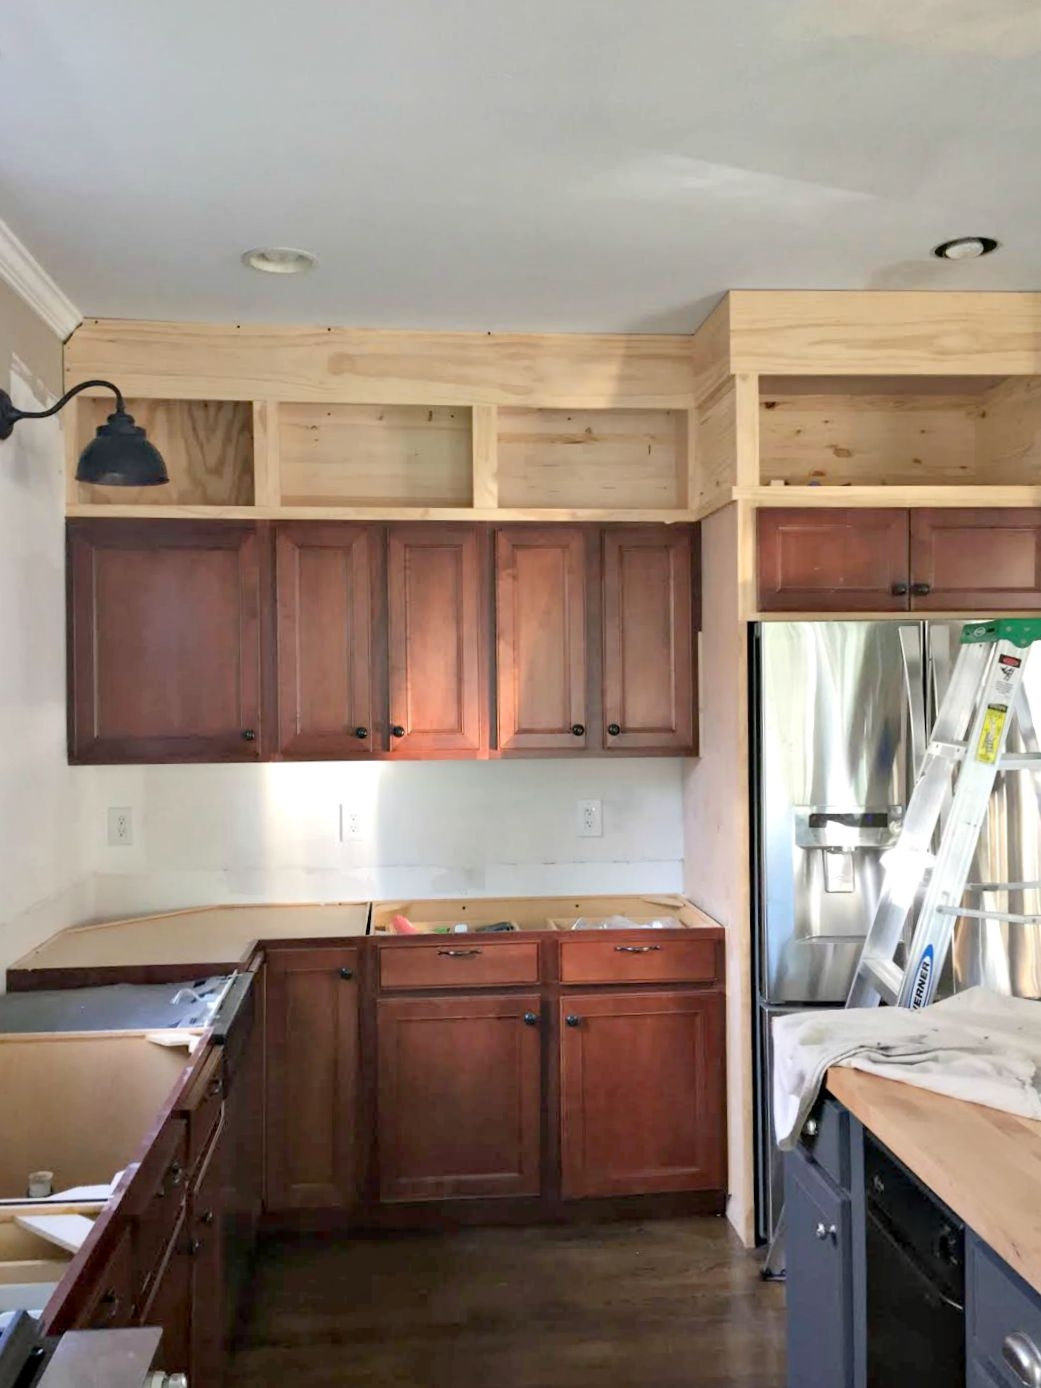 10 Kitchen And Home Decor Items Every 20 Something Needs: Kitchen Cabinet Height 9 Foot Ceilings